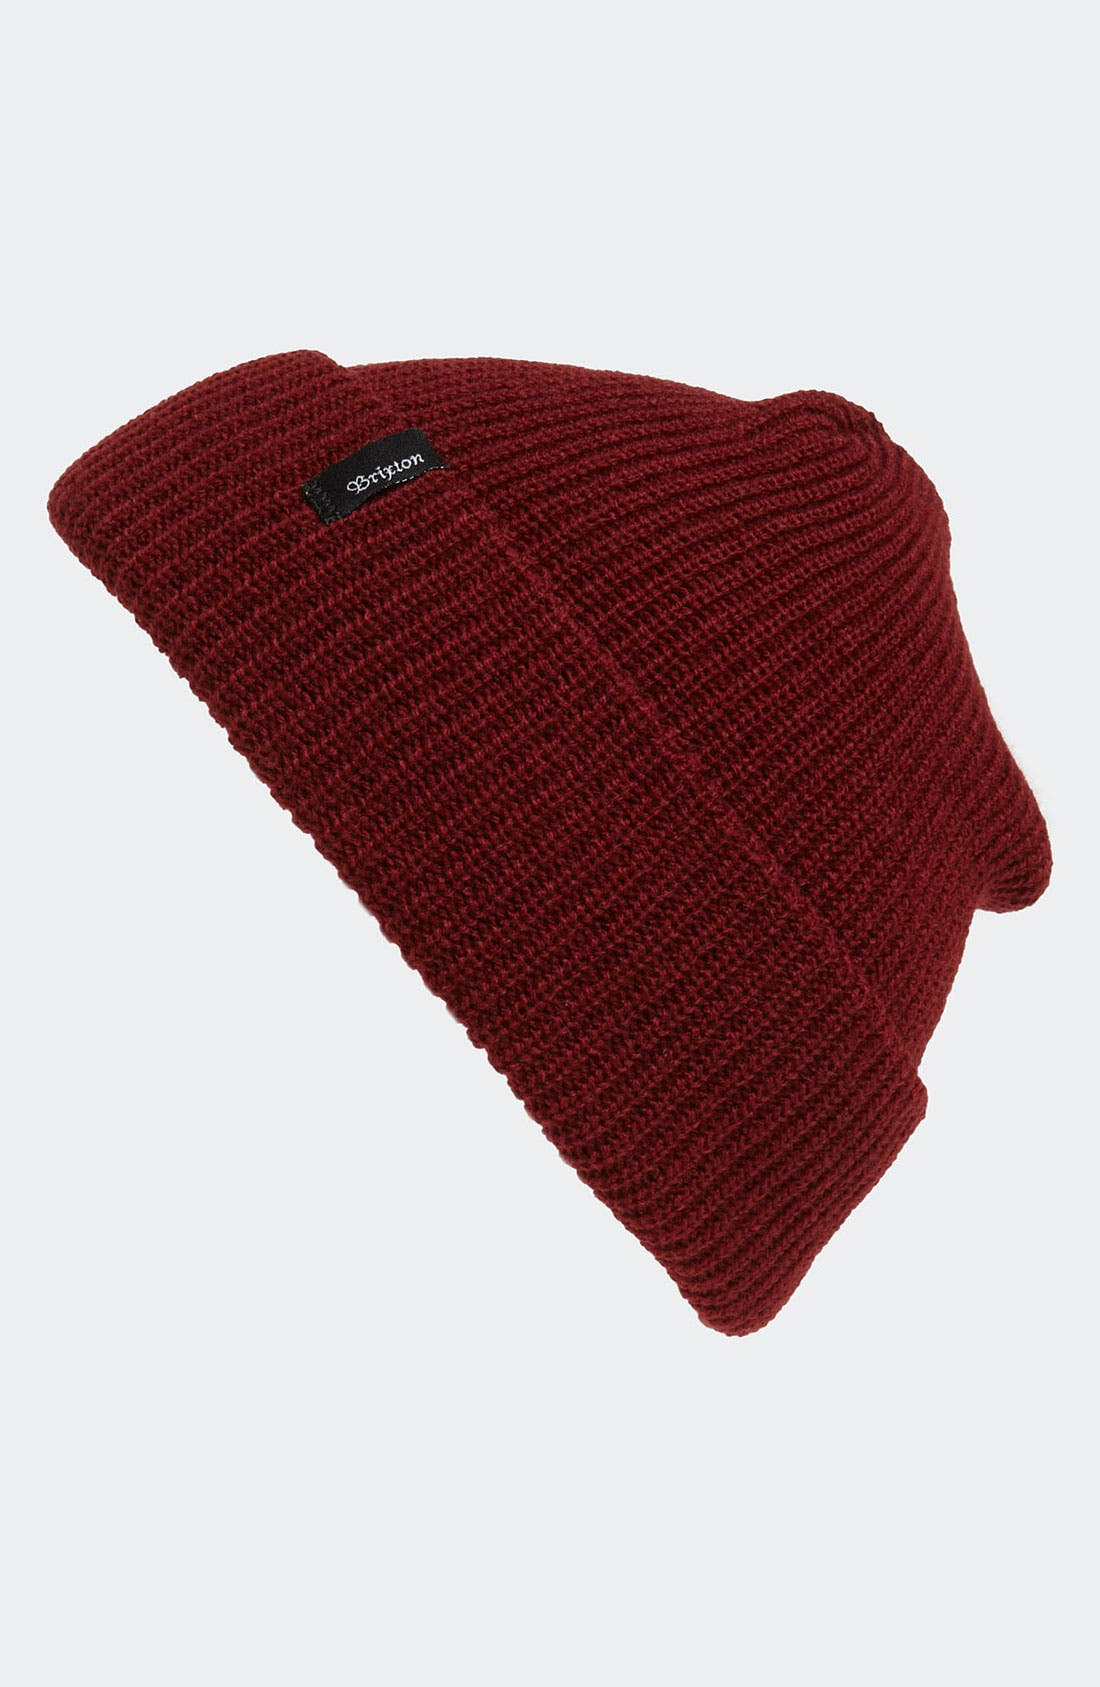 Alternate Image 1 Selected - Brixton 'Heist' Rib Knit Cap (Men)